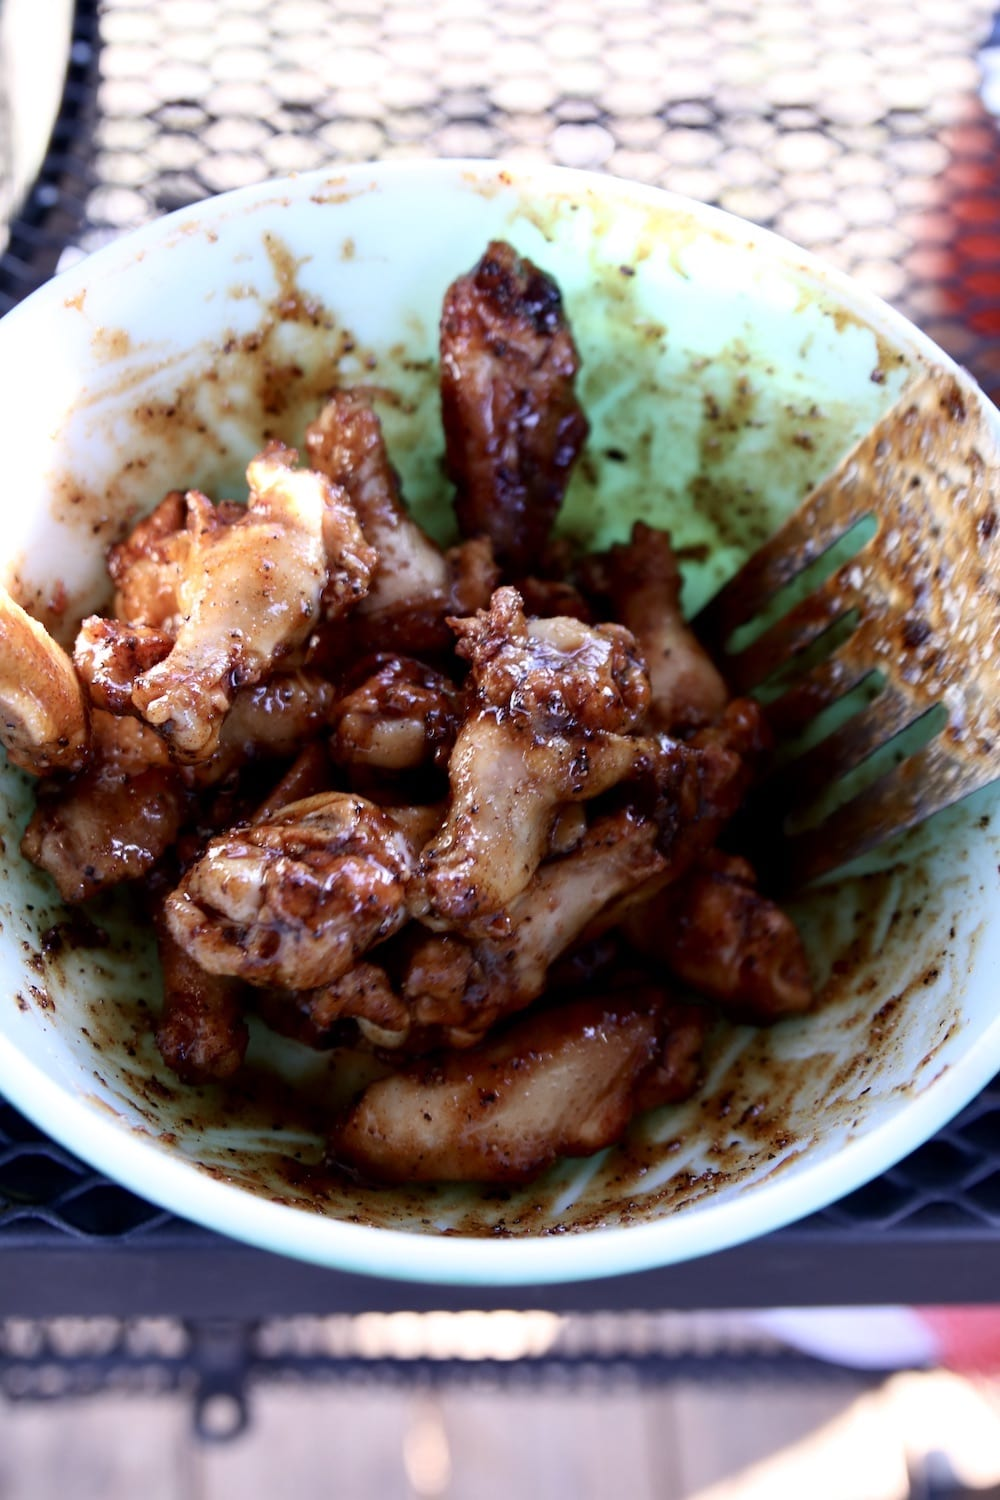 Chicken wings with maple sauce in a bowl